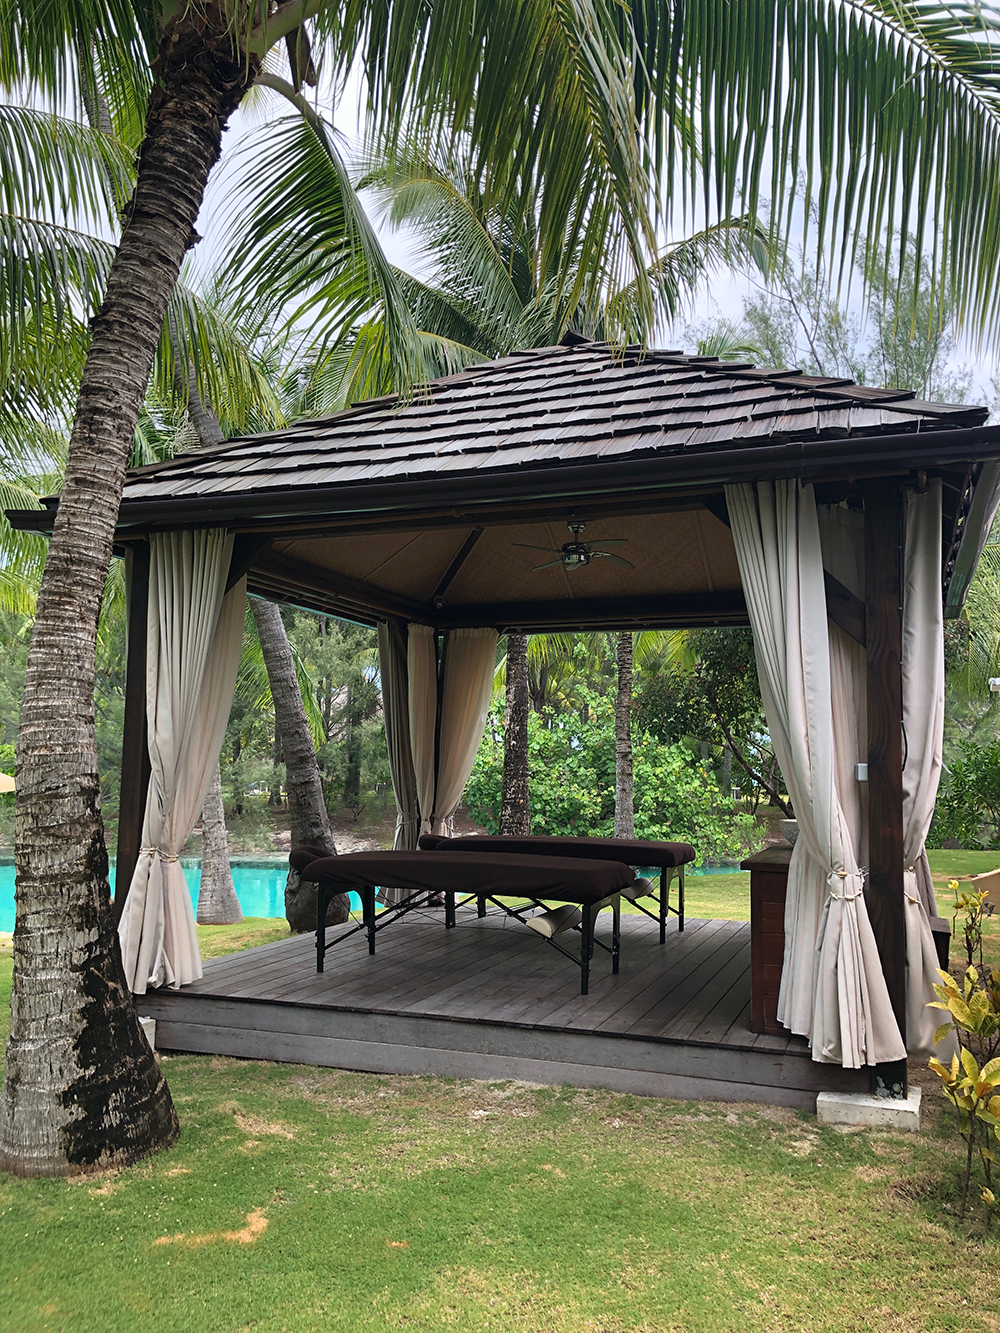 The spa also has an outdoor pavilion facing the lagoon where guests can opt to receive treatments.